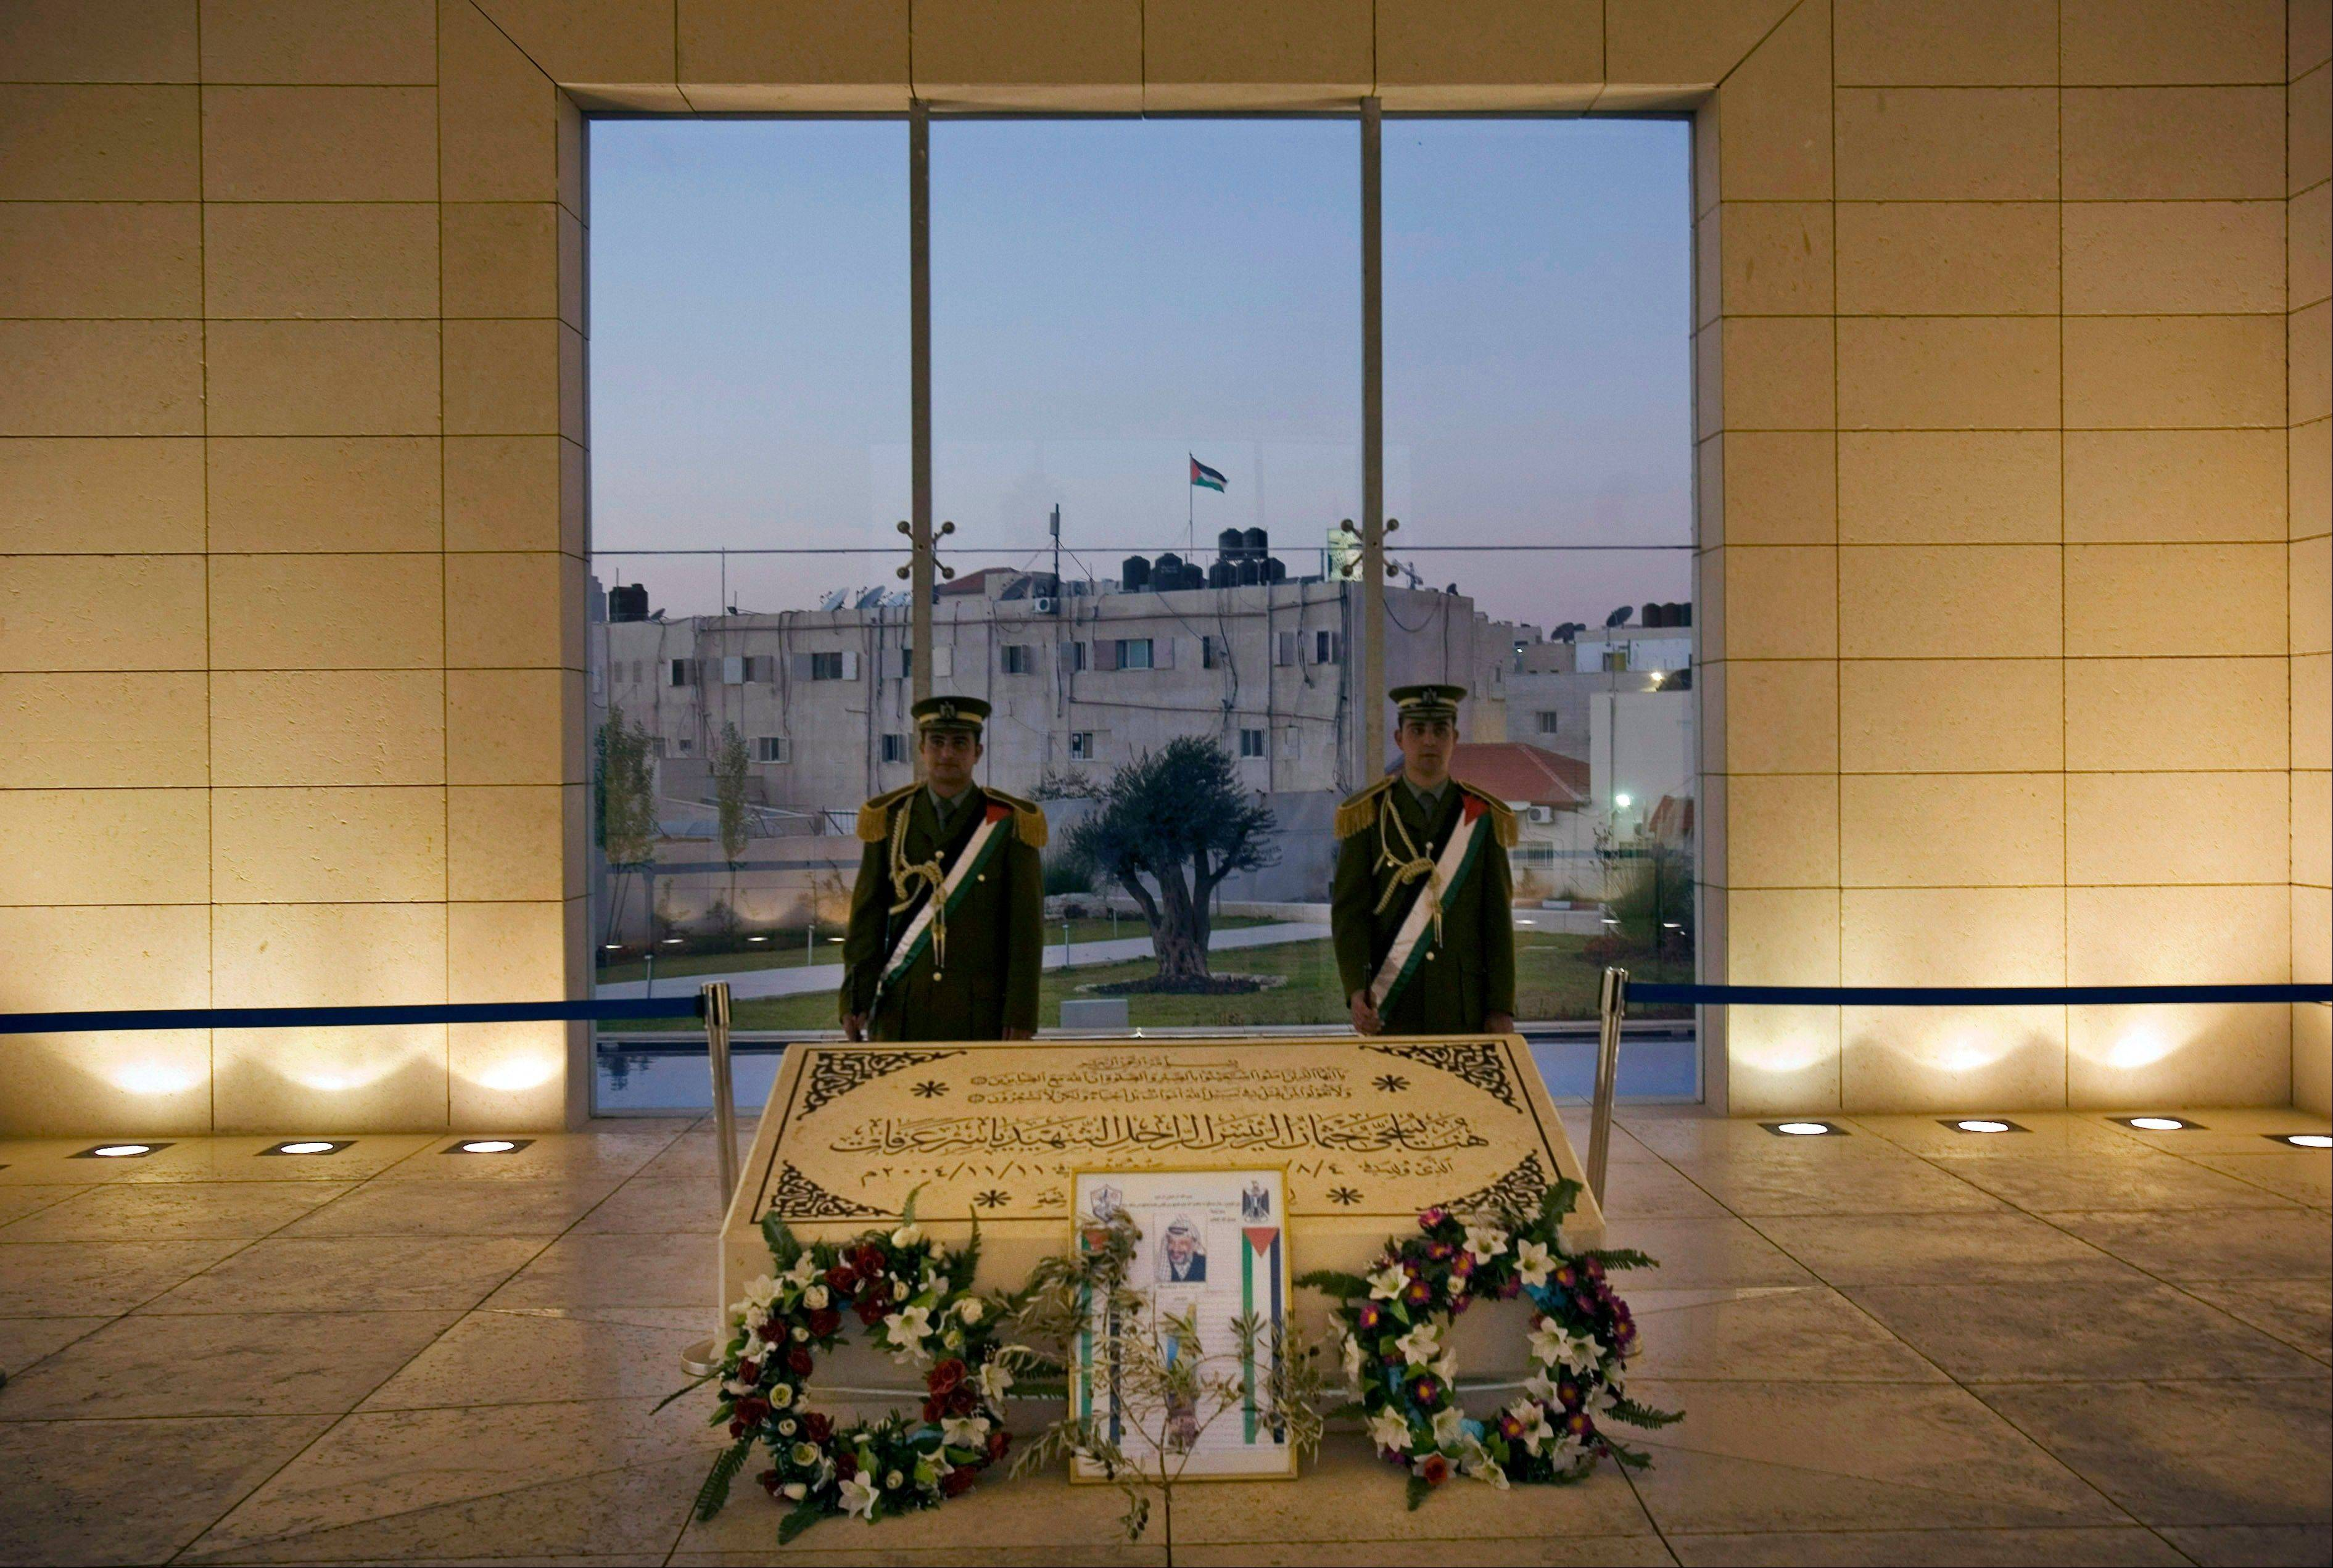 Members of the Palestinian Presidential Guard stand at the grave of the late leader Yasser Arafat in the West Bank city of Ramallah. Arafat's remains will be exhumed Nov. 26, a Western diplomat said Monday, as investigators began determining how best to dig up the grave and extract samples.